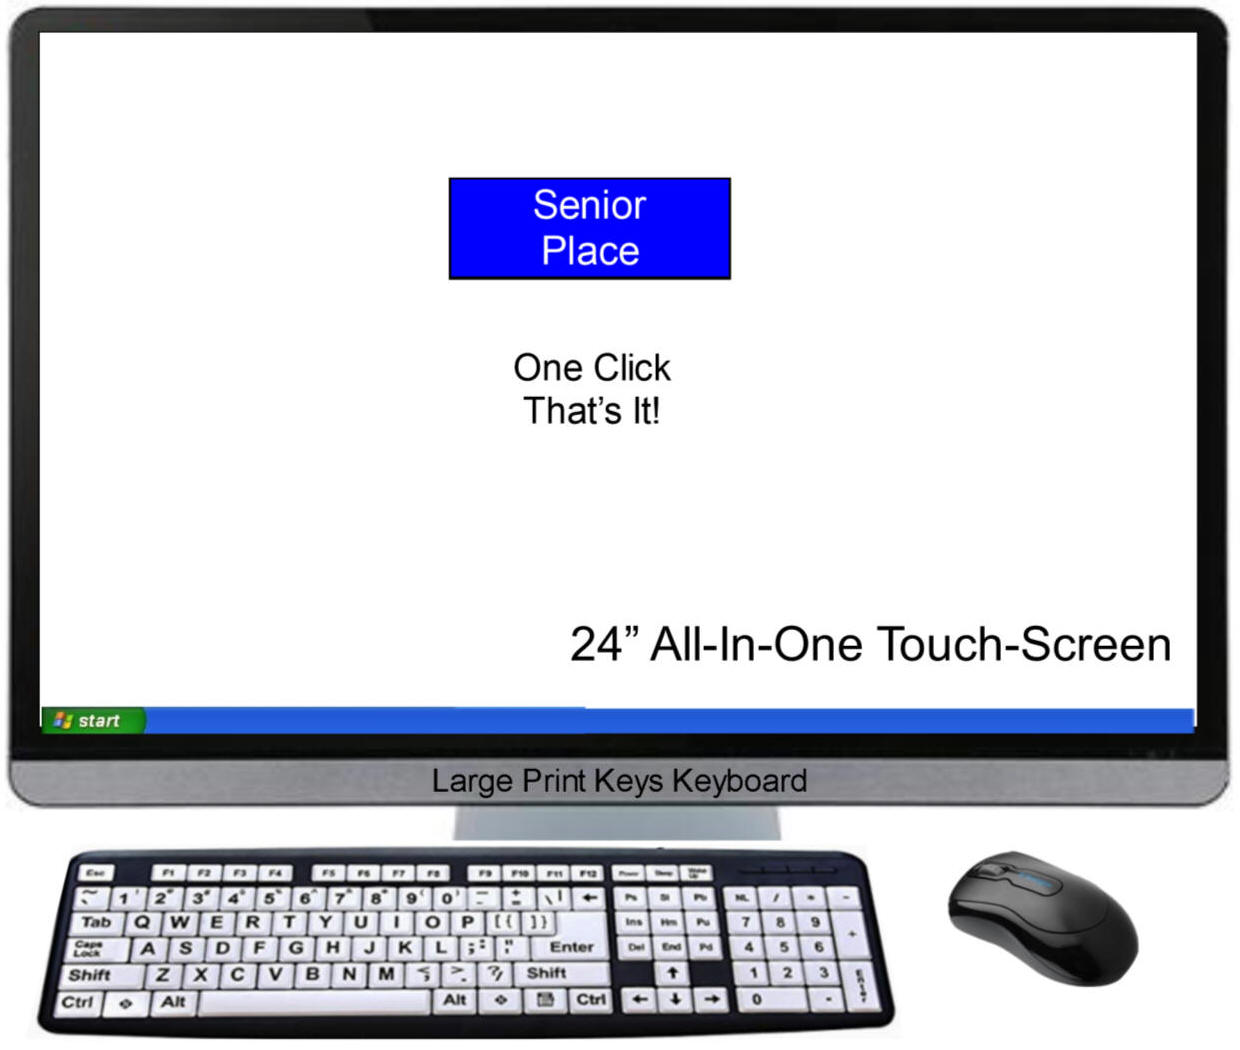 WOW computers for seniors